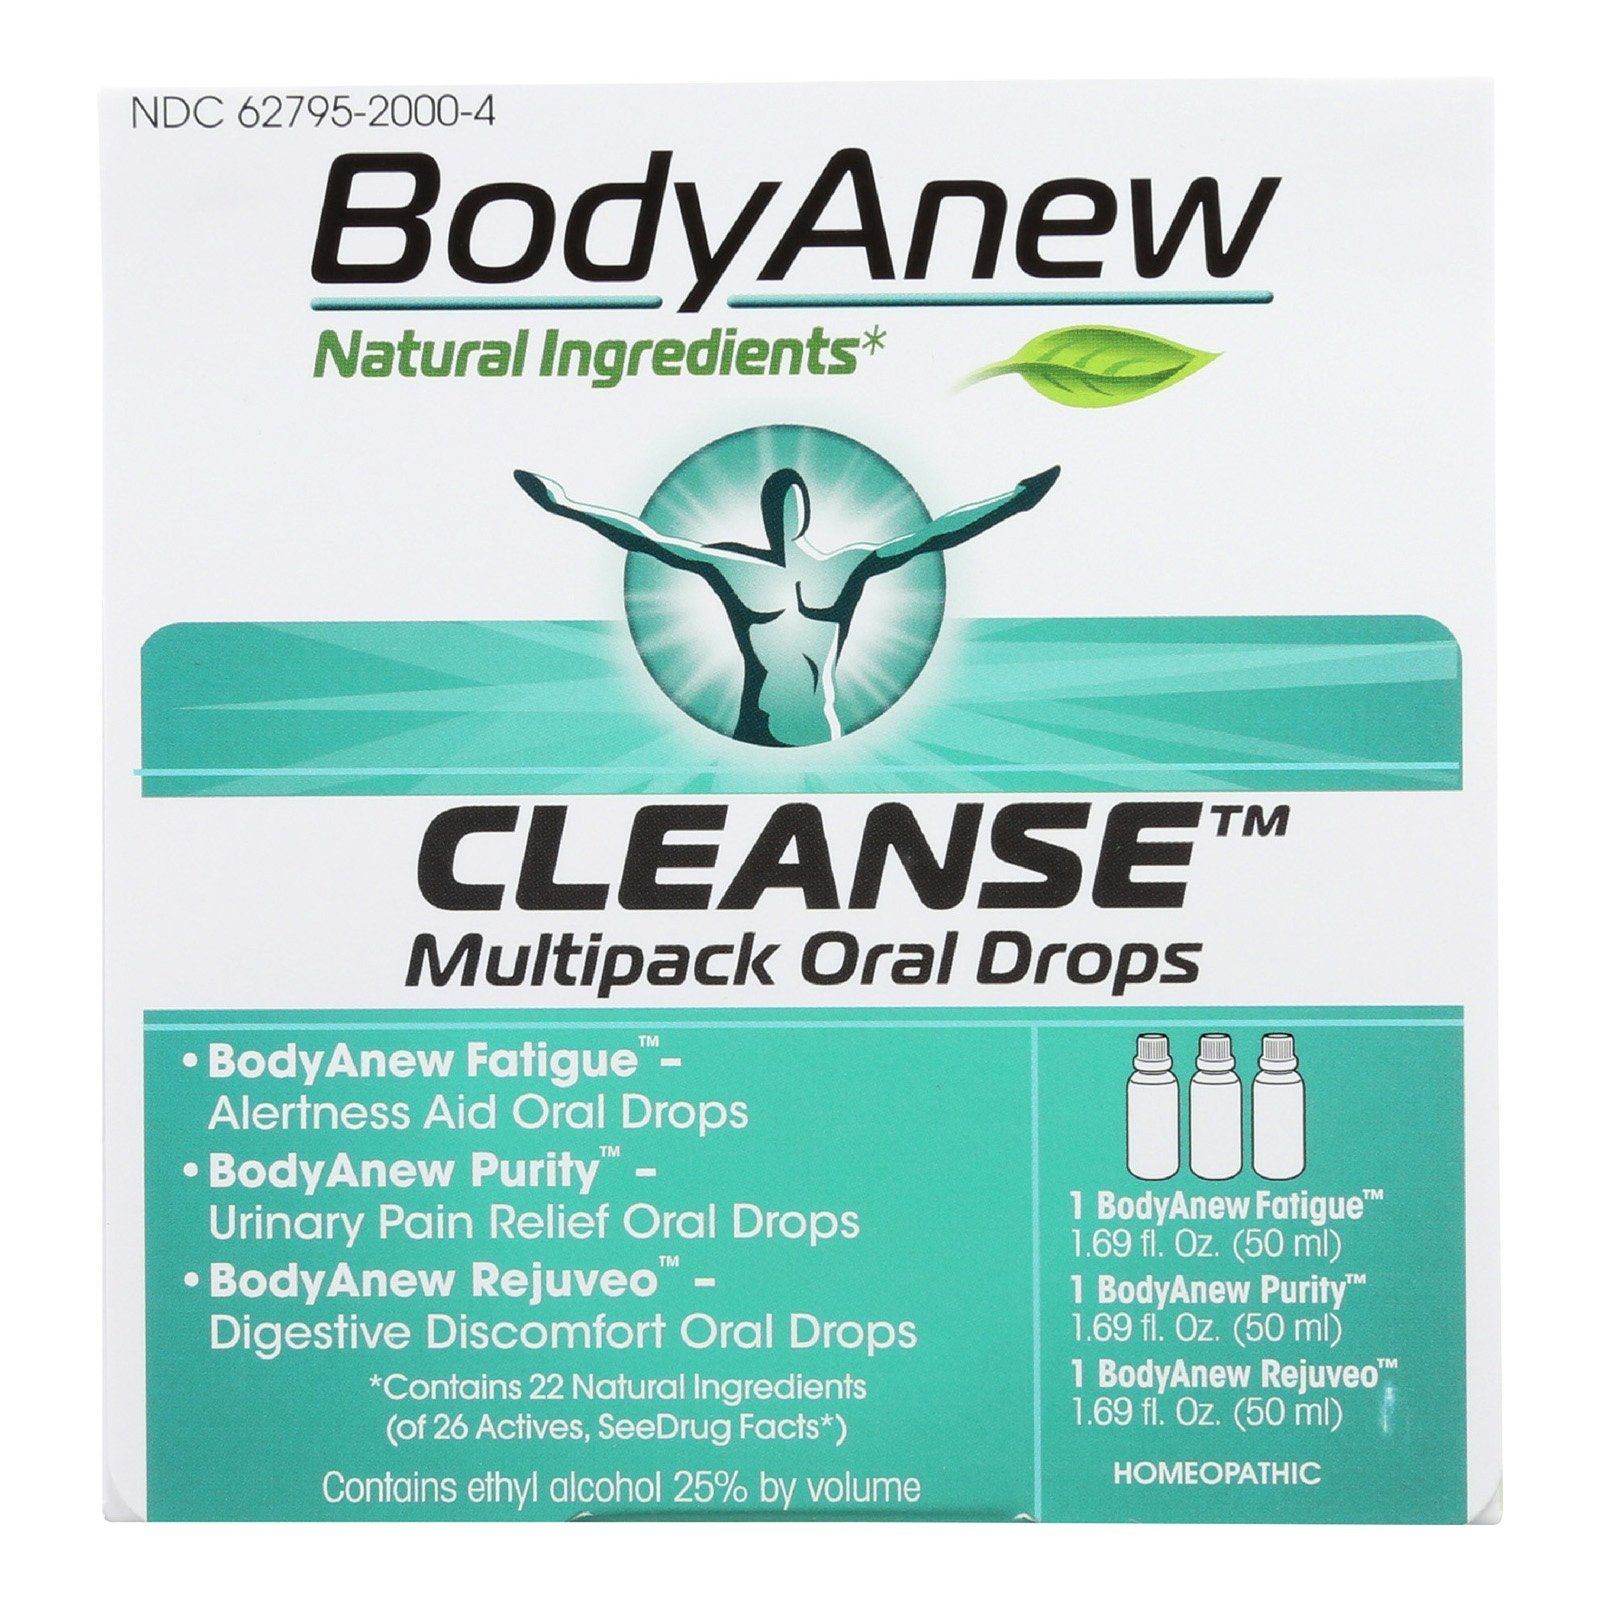 Bodyanew Cleanse Multipack Oral Drops 50 Ml 3 Ct In 2019